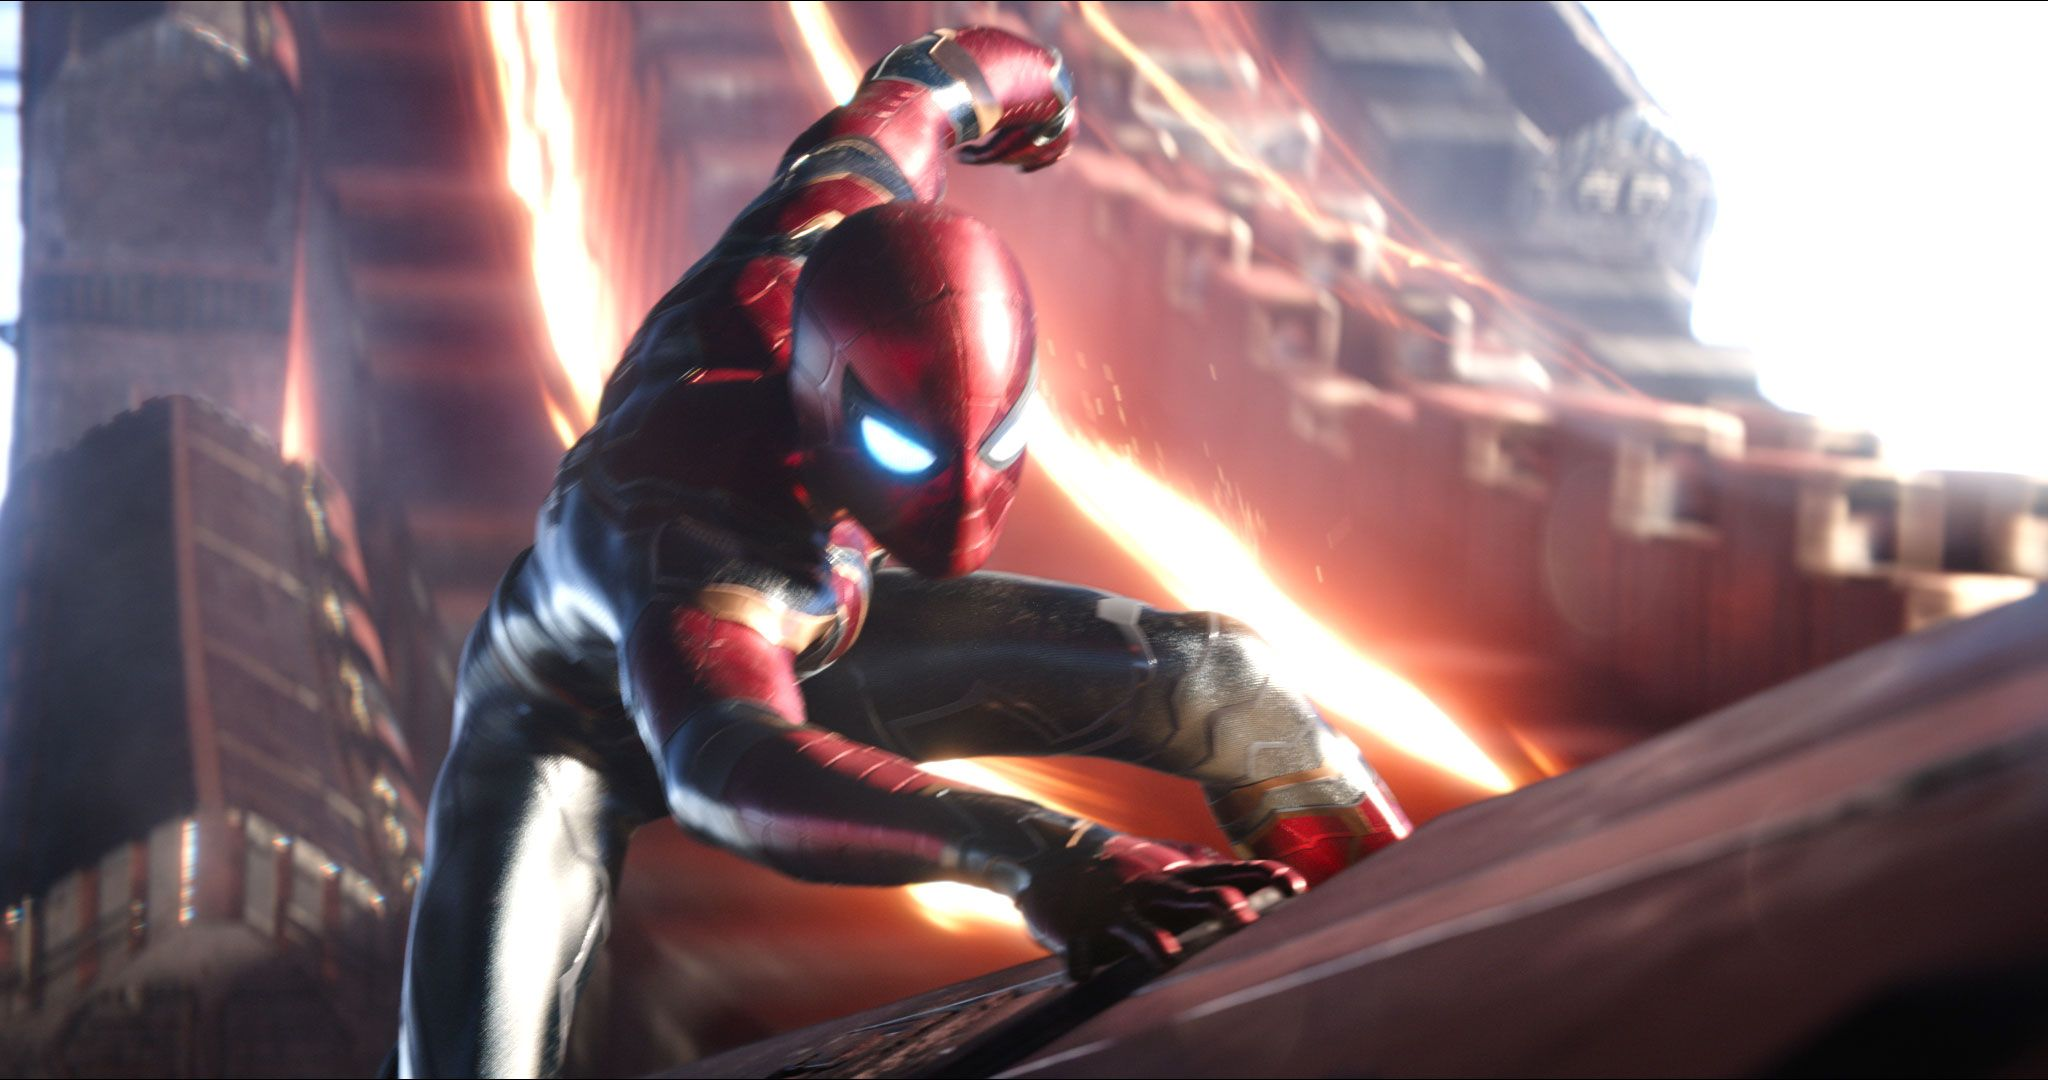 Spider-Man writer reveals what he didn't like about Avengers: Endgame